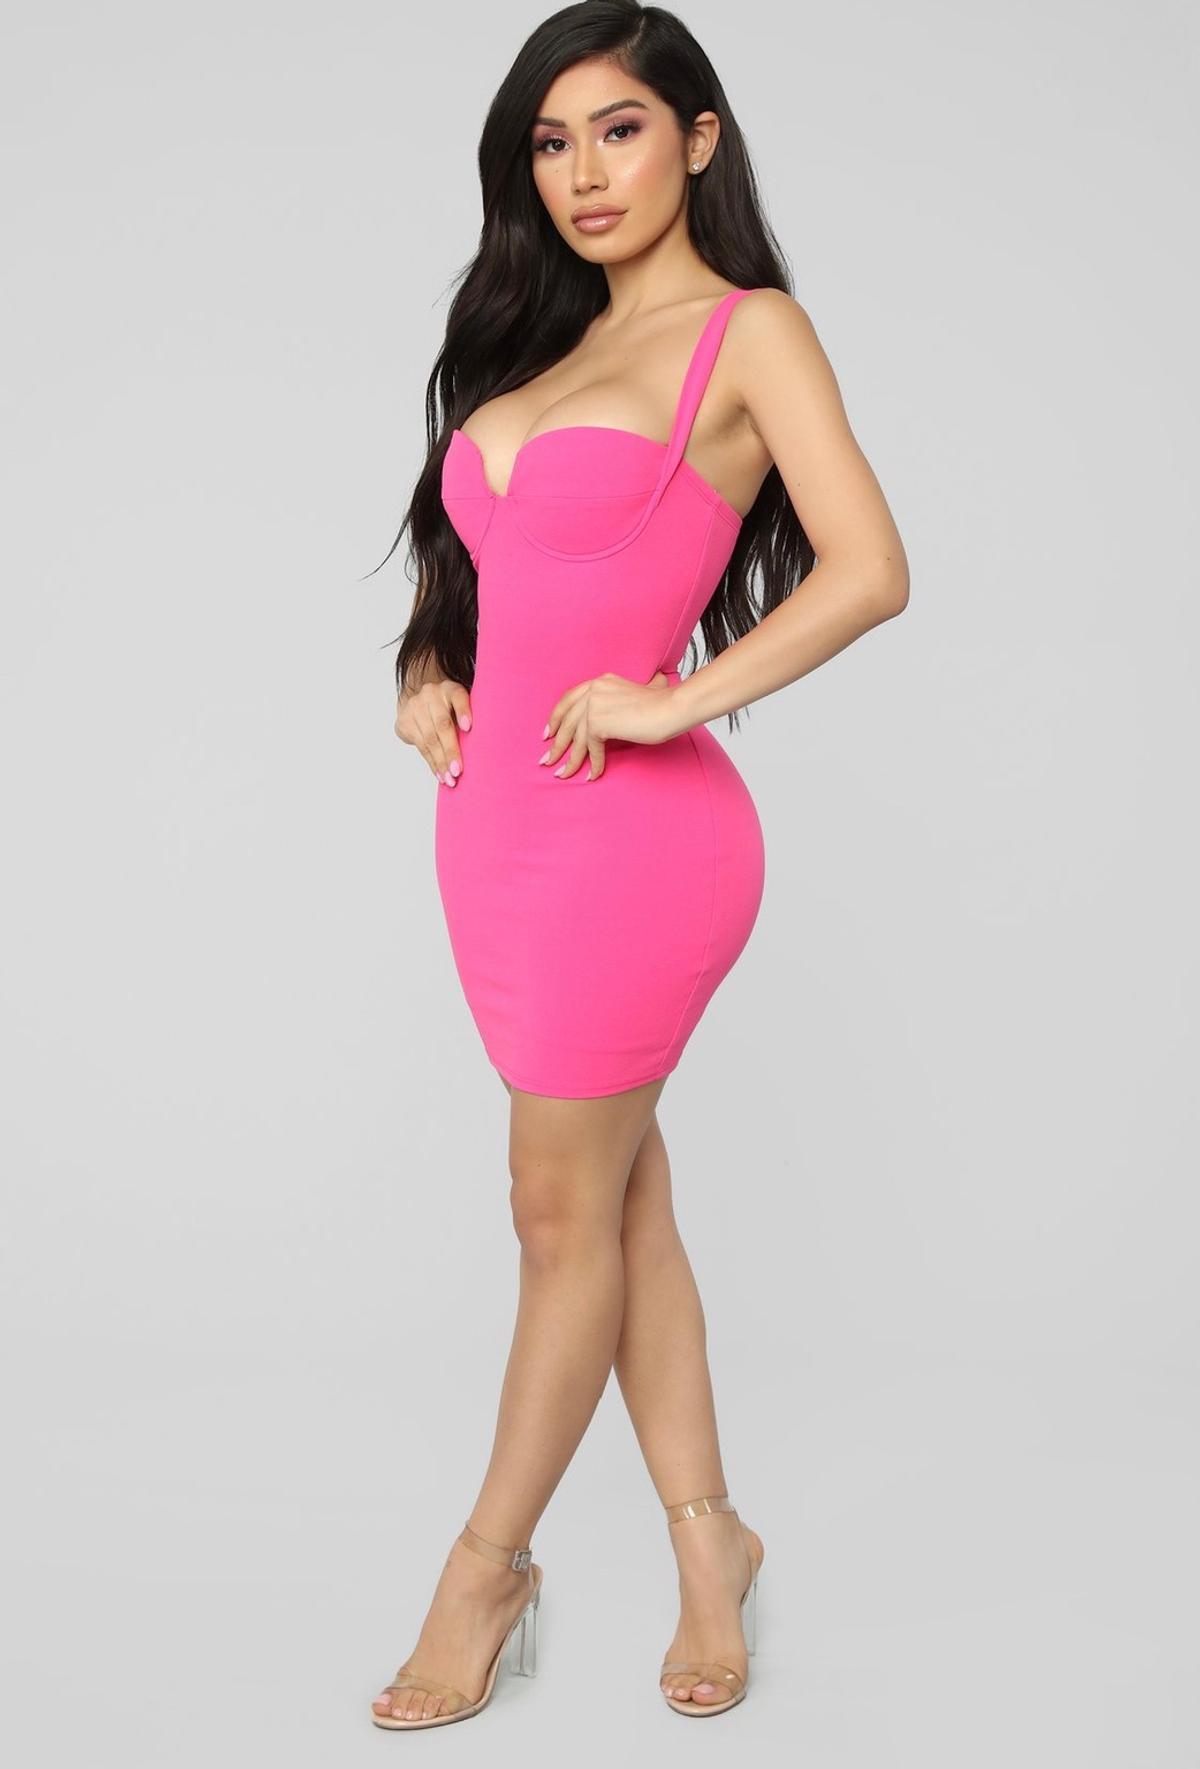 Minikleid pink neu in 18 Berlin for €18.18 for sale  Shpock